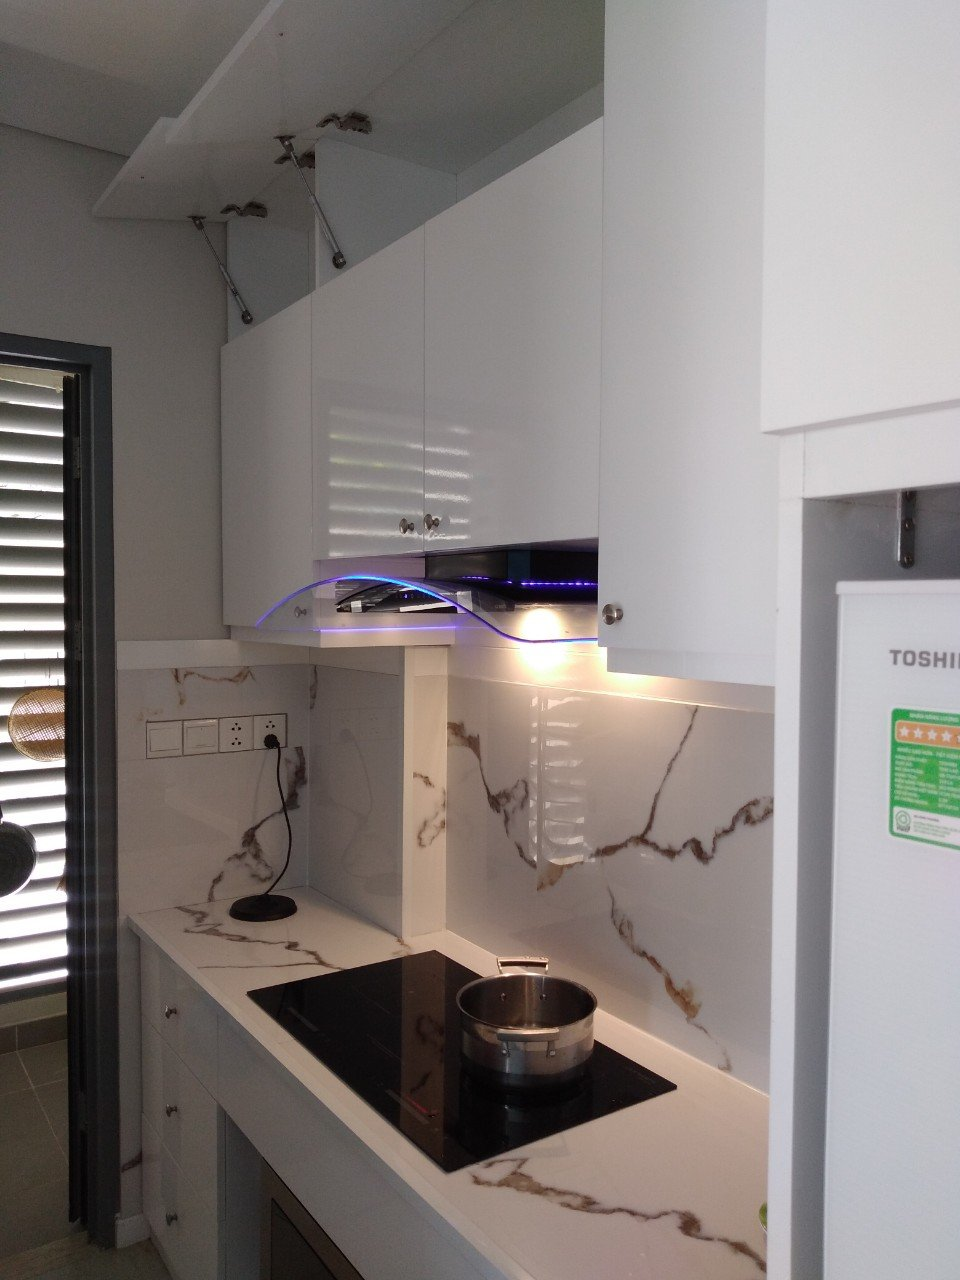 DI0028 - Diamond Island Apartment For Rent & Sale in Ho Chi Minh City - 1 bedroom